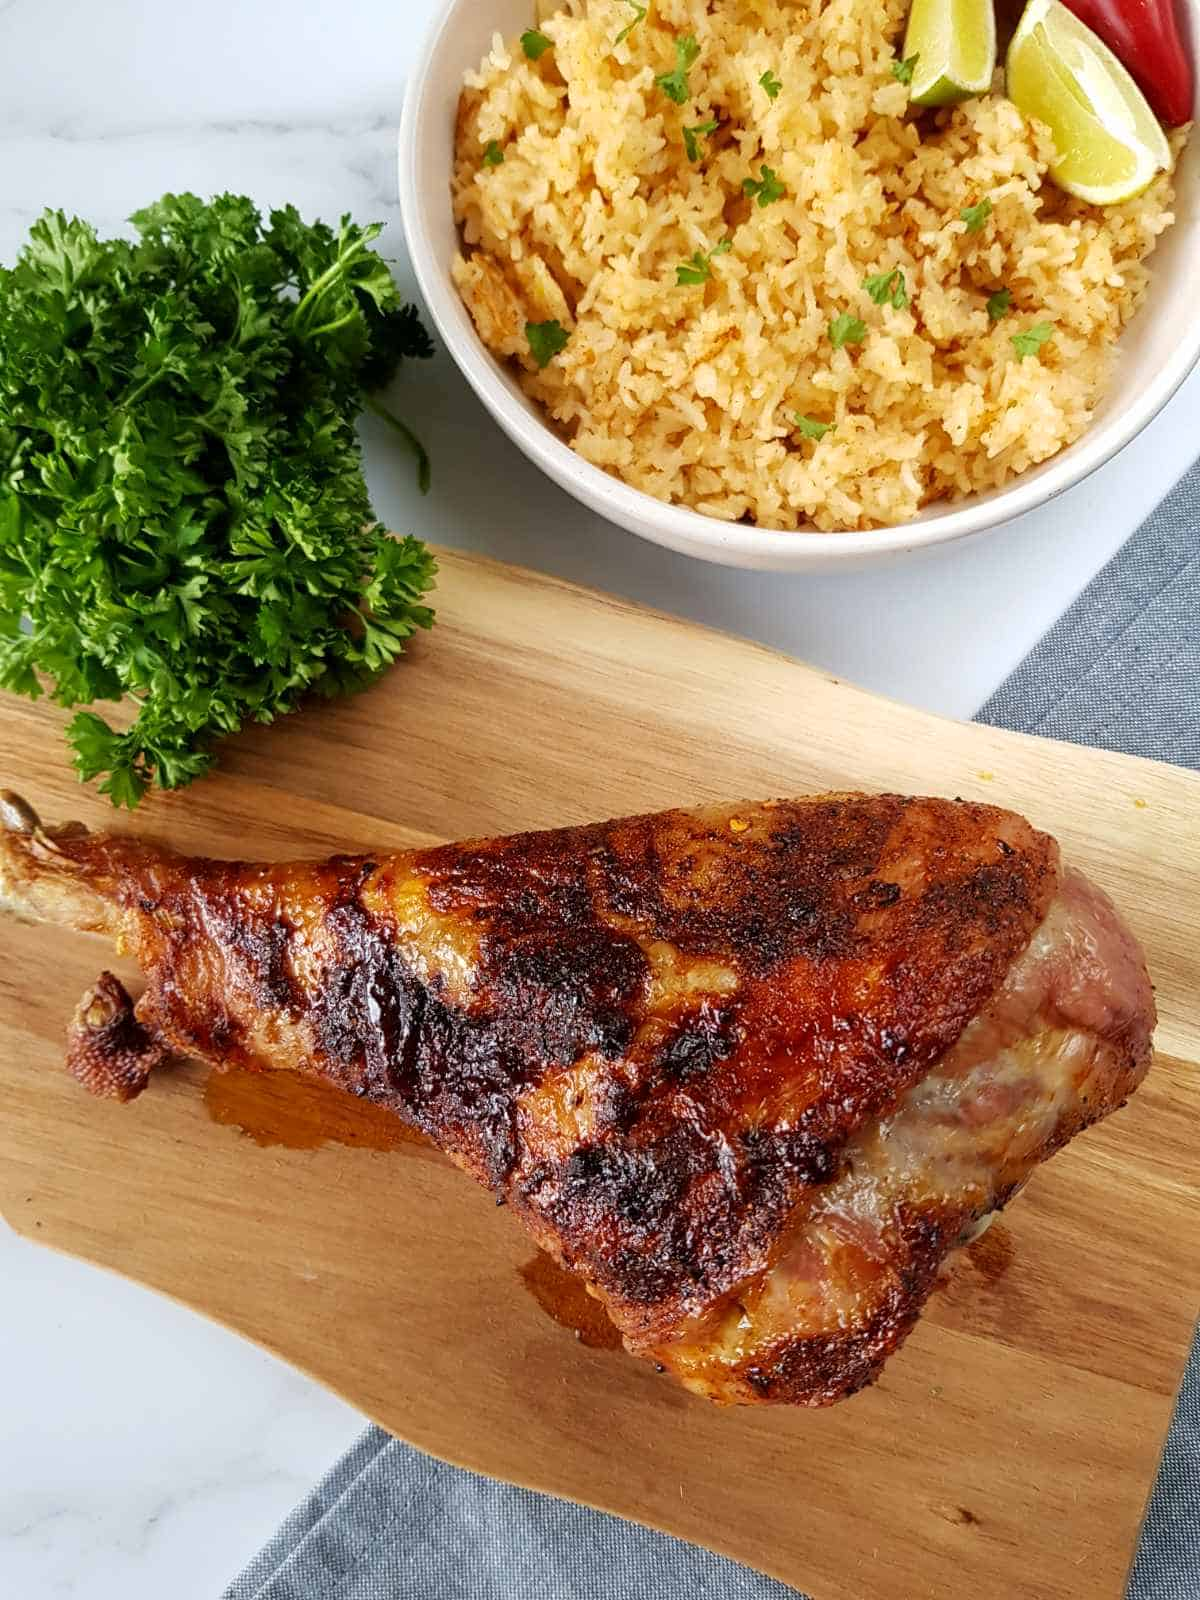 Moroccan roasted turkey drumstick on a wooden board with fresh herbs and rice on the side.